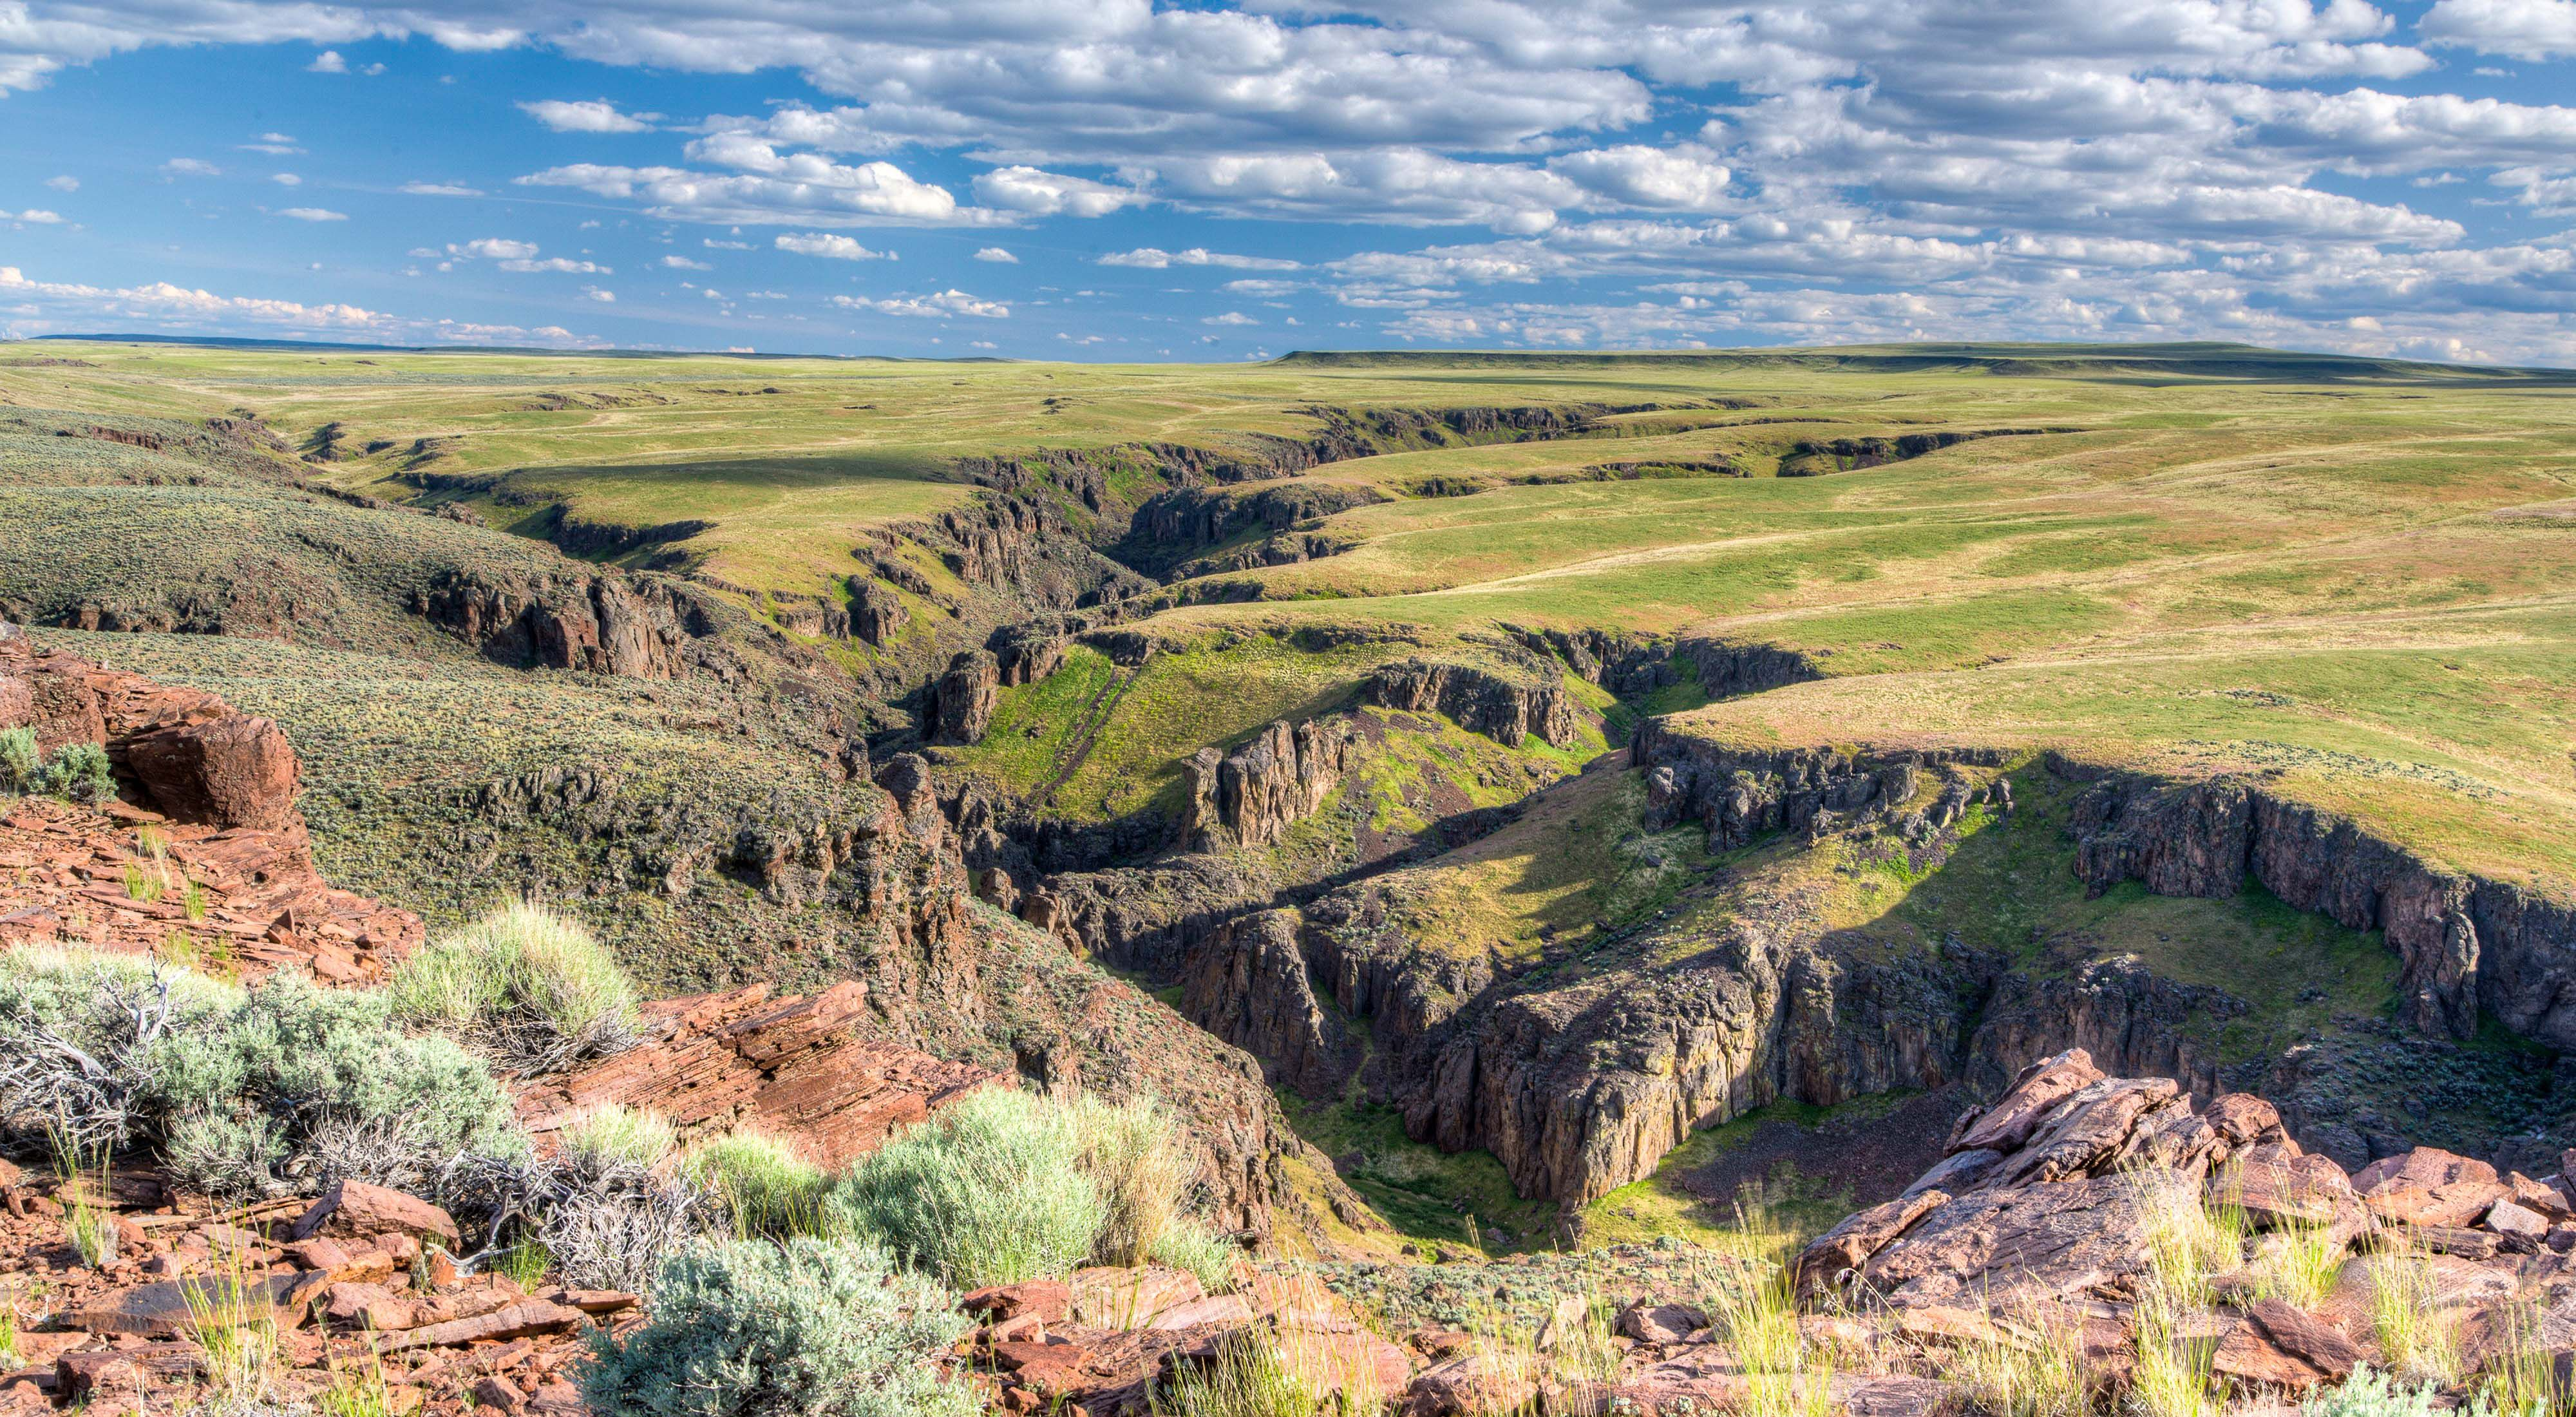 The Owyhee Canyonlands area a remote area made of deep canyons and high desert plateaus in southern Idaho.